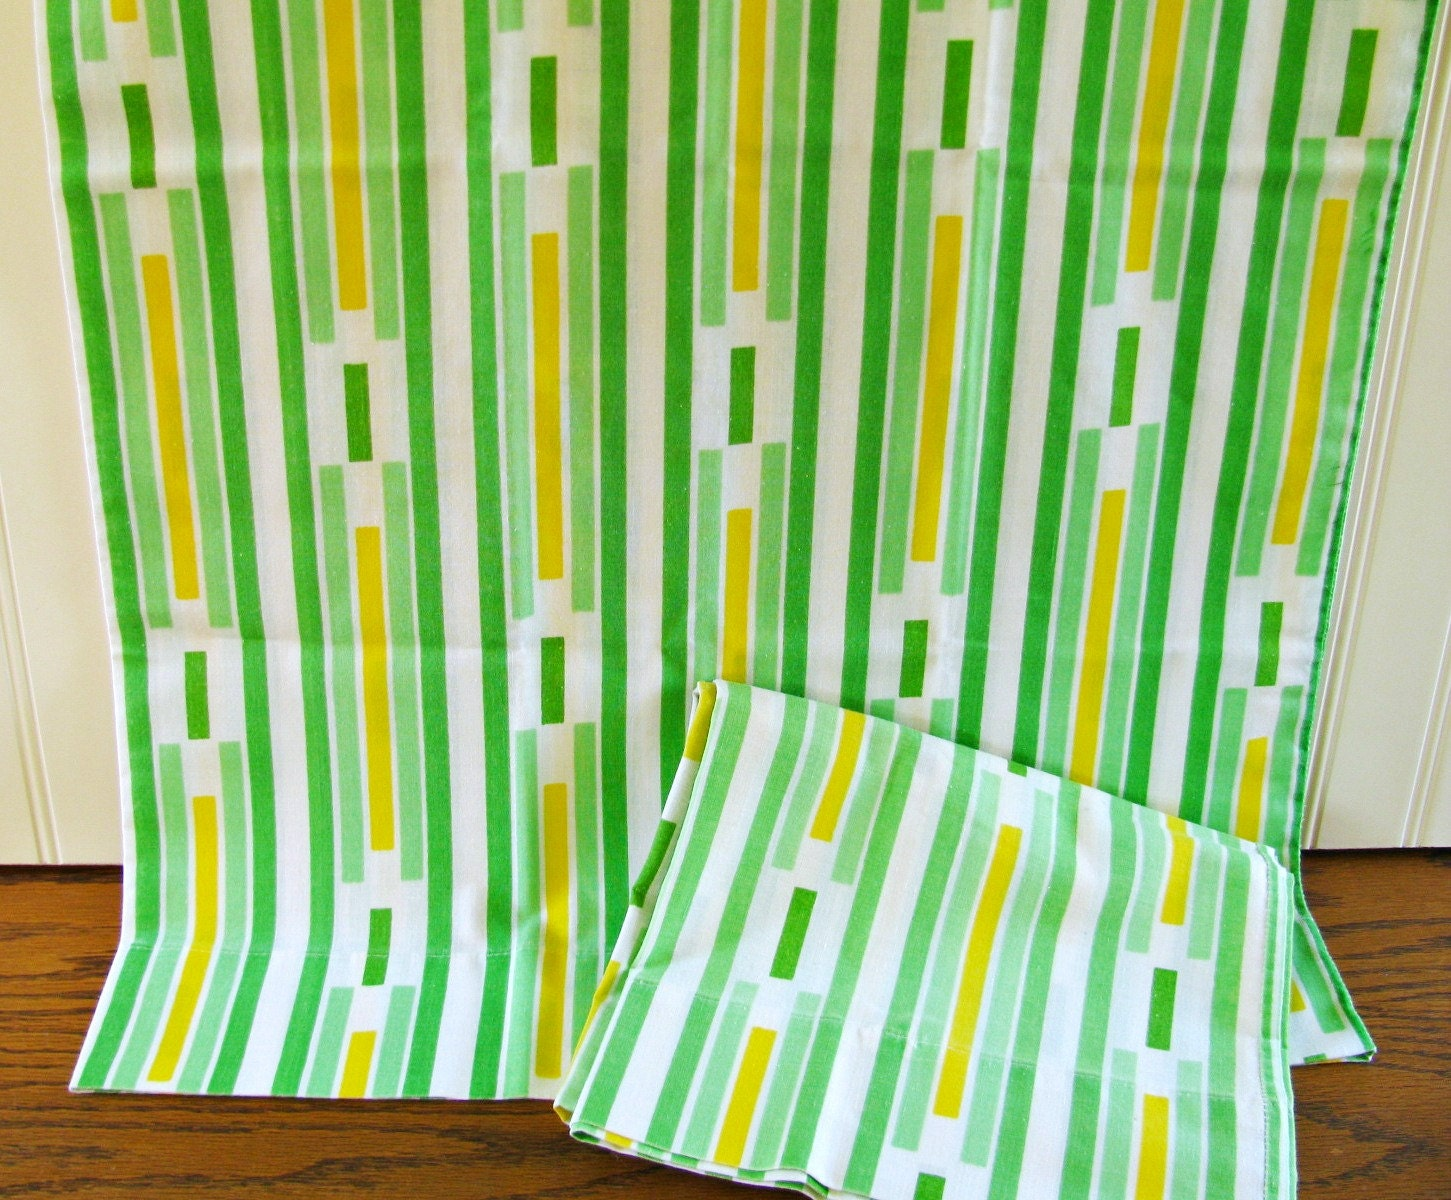 2 Vintage Striped Pillowcases Green Pillowcases Green And